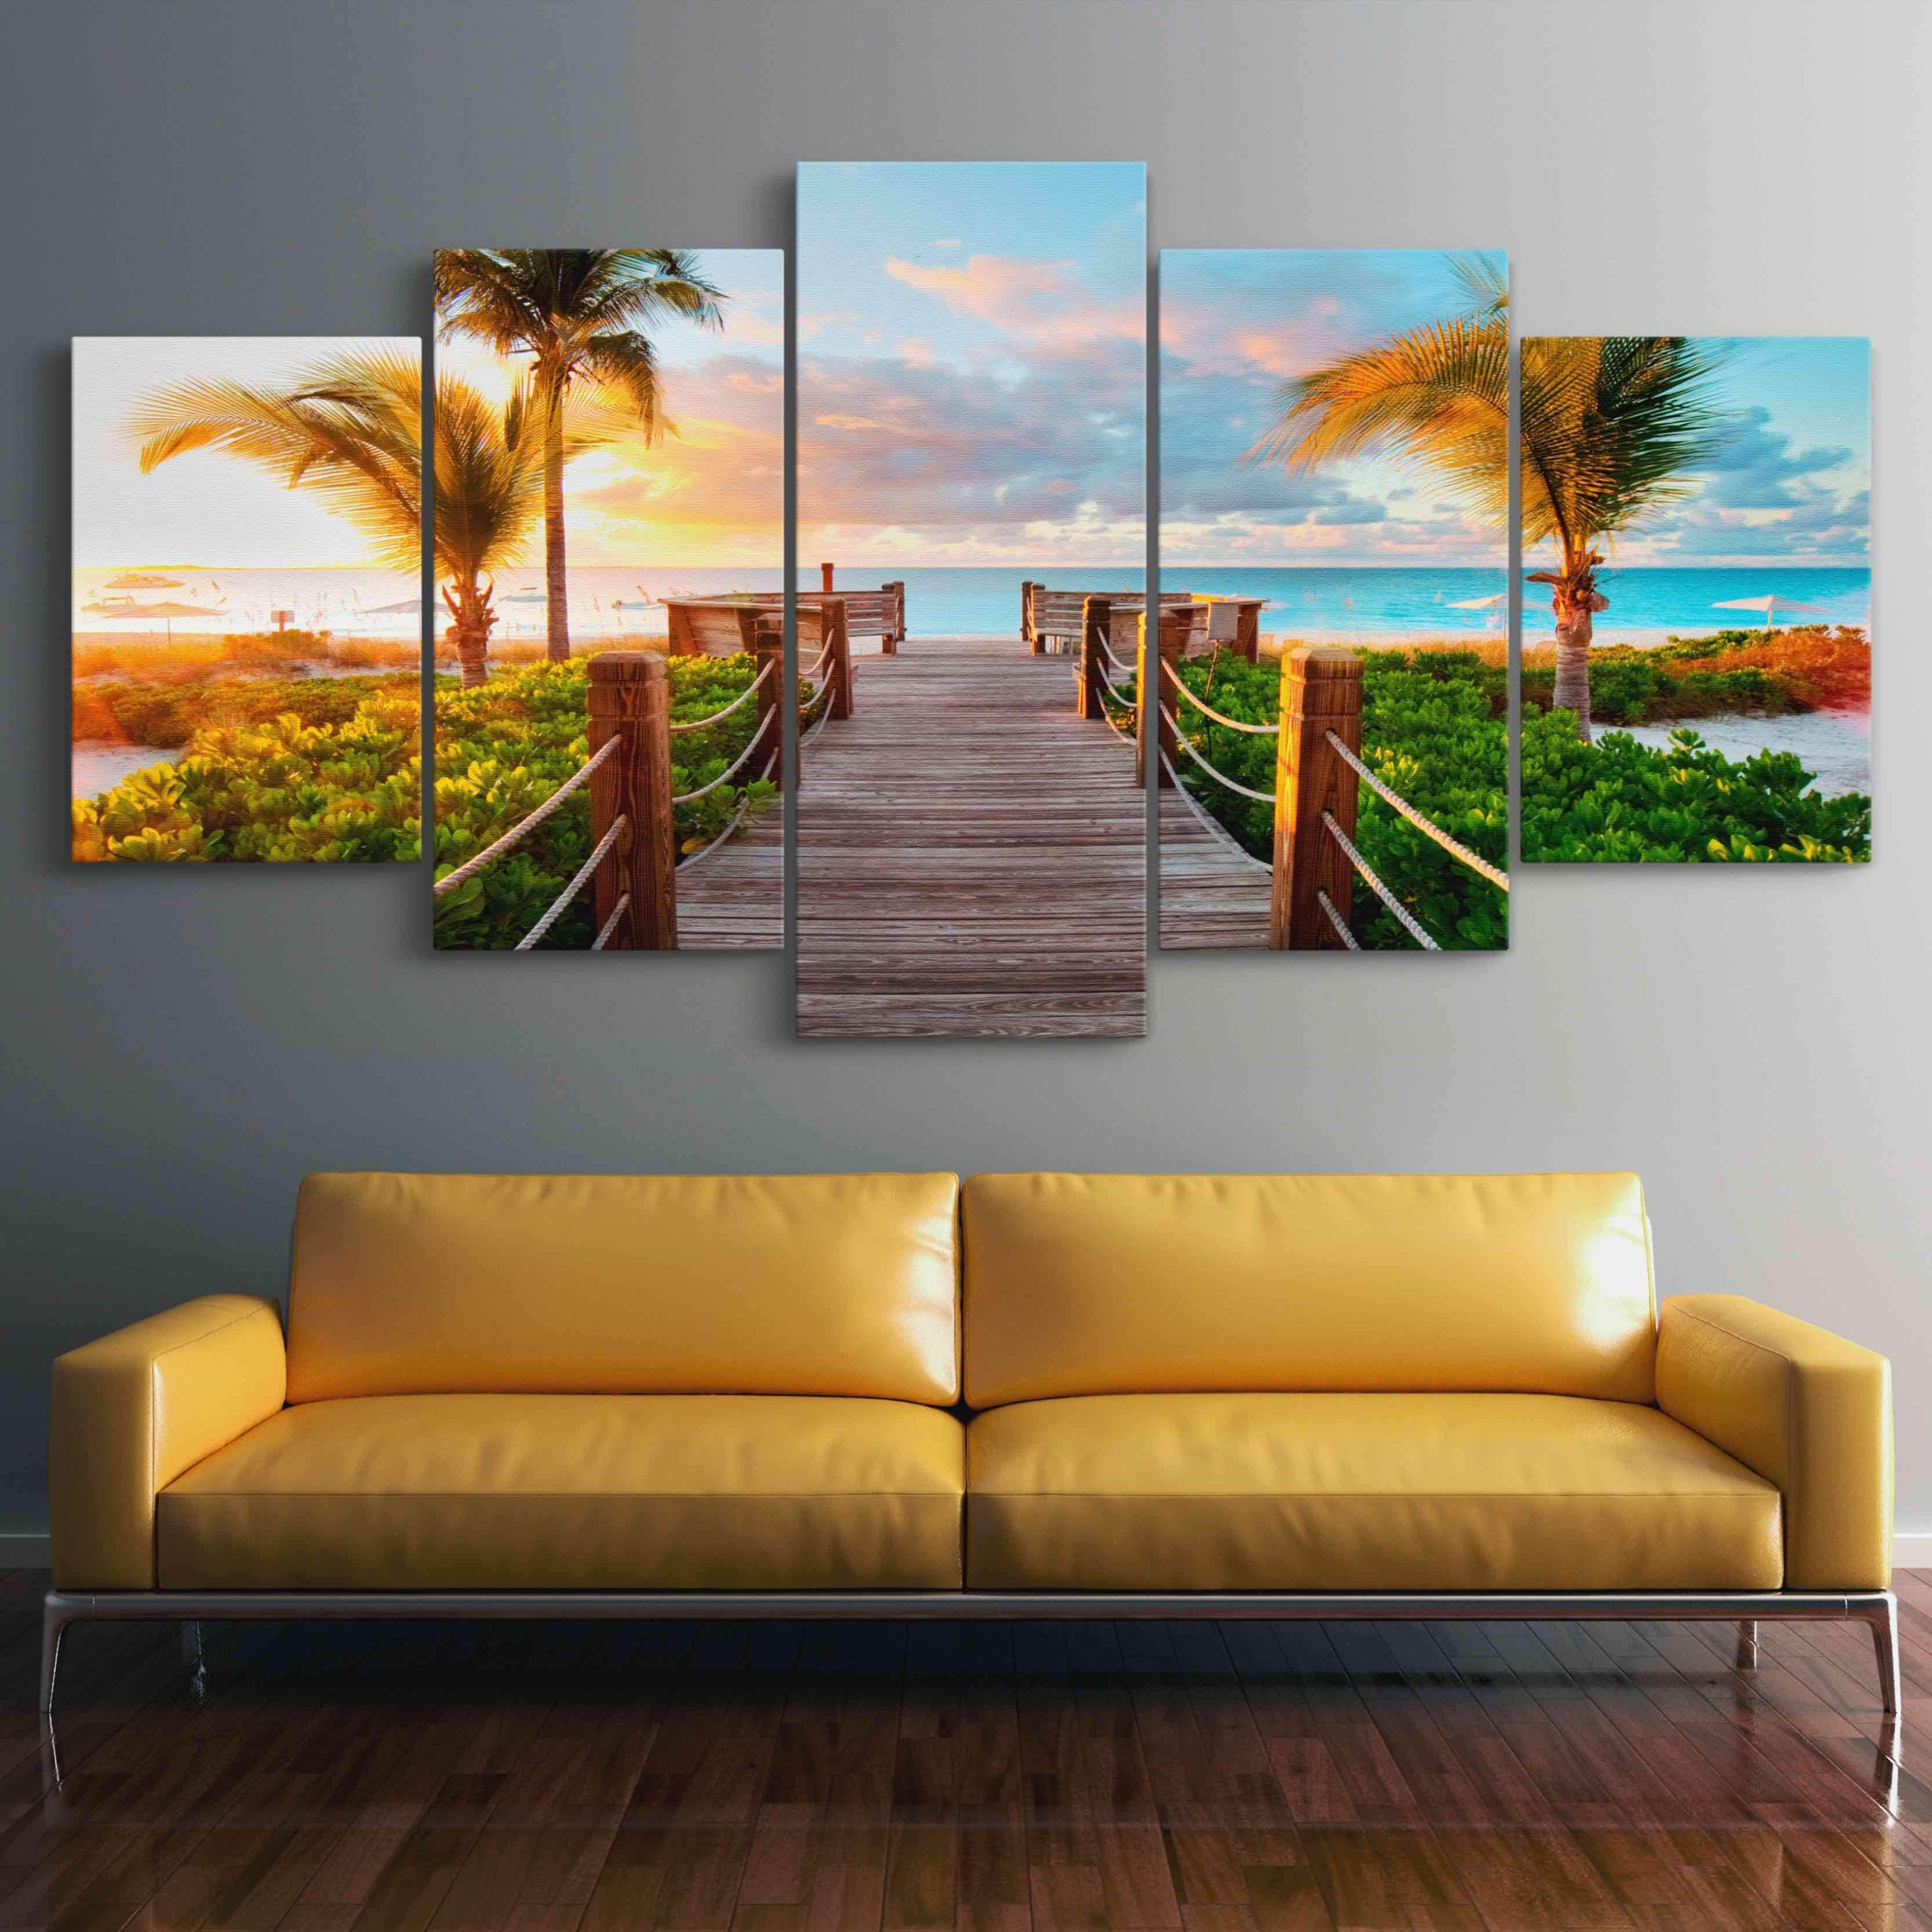 5P Canvas Boardwalk to Paradise 5 panel wall art canvas